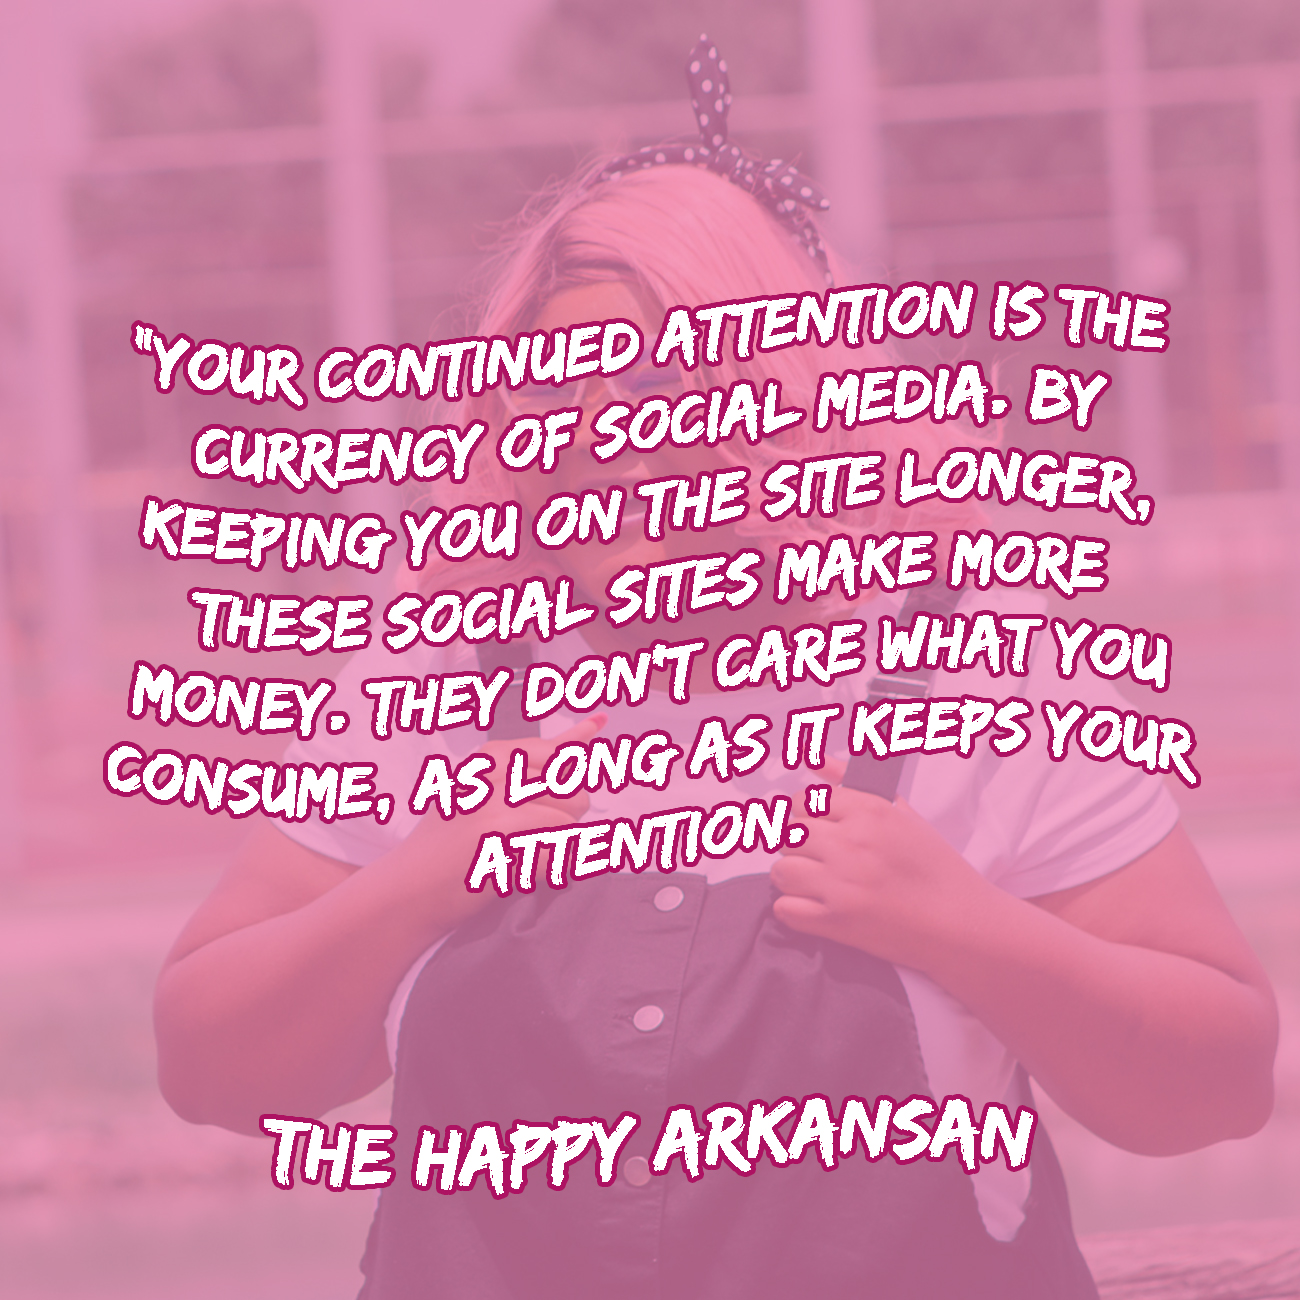 Your continued attention is the currency of social media. By keeping you on the site longer, these social sites make more money. They don't care what you consume, as long as it keeps your attention.